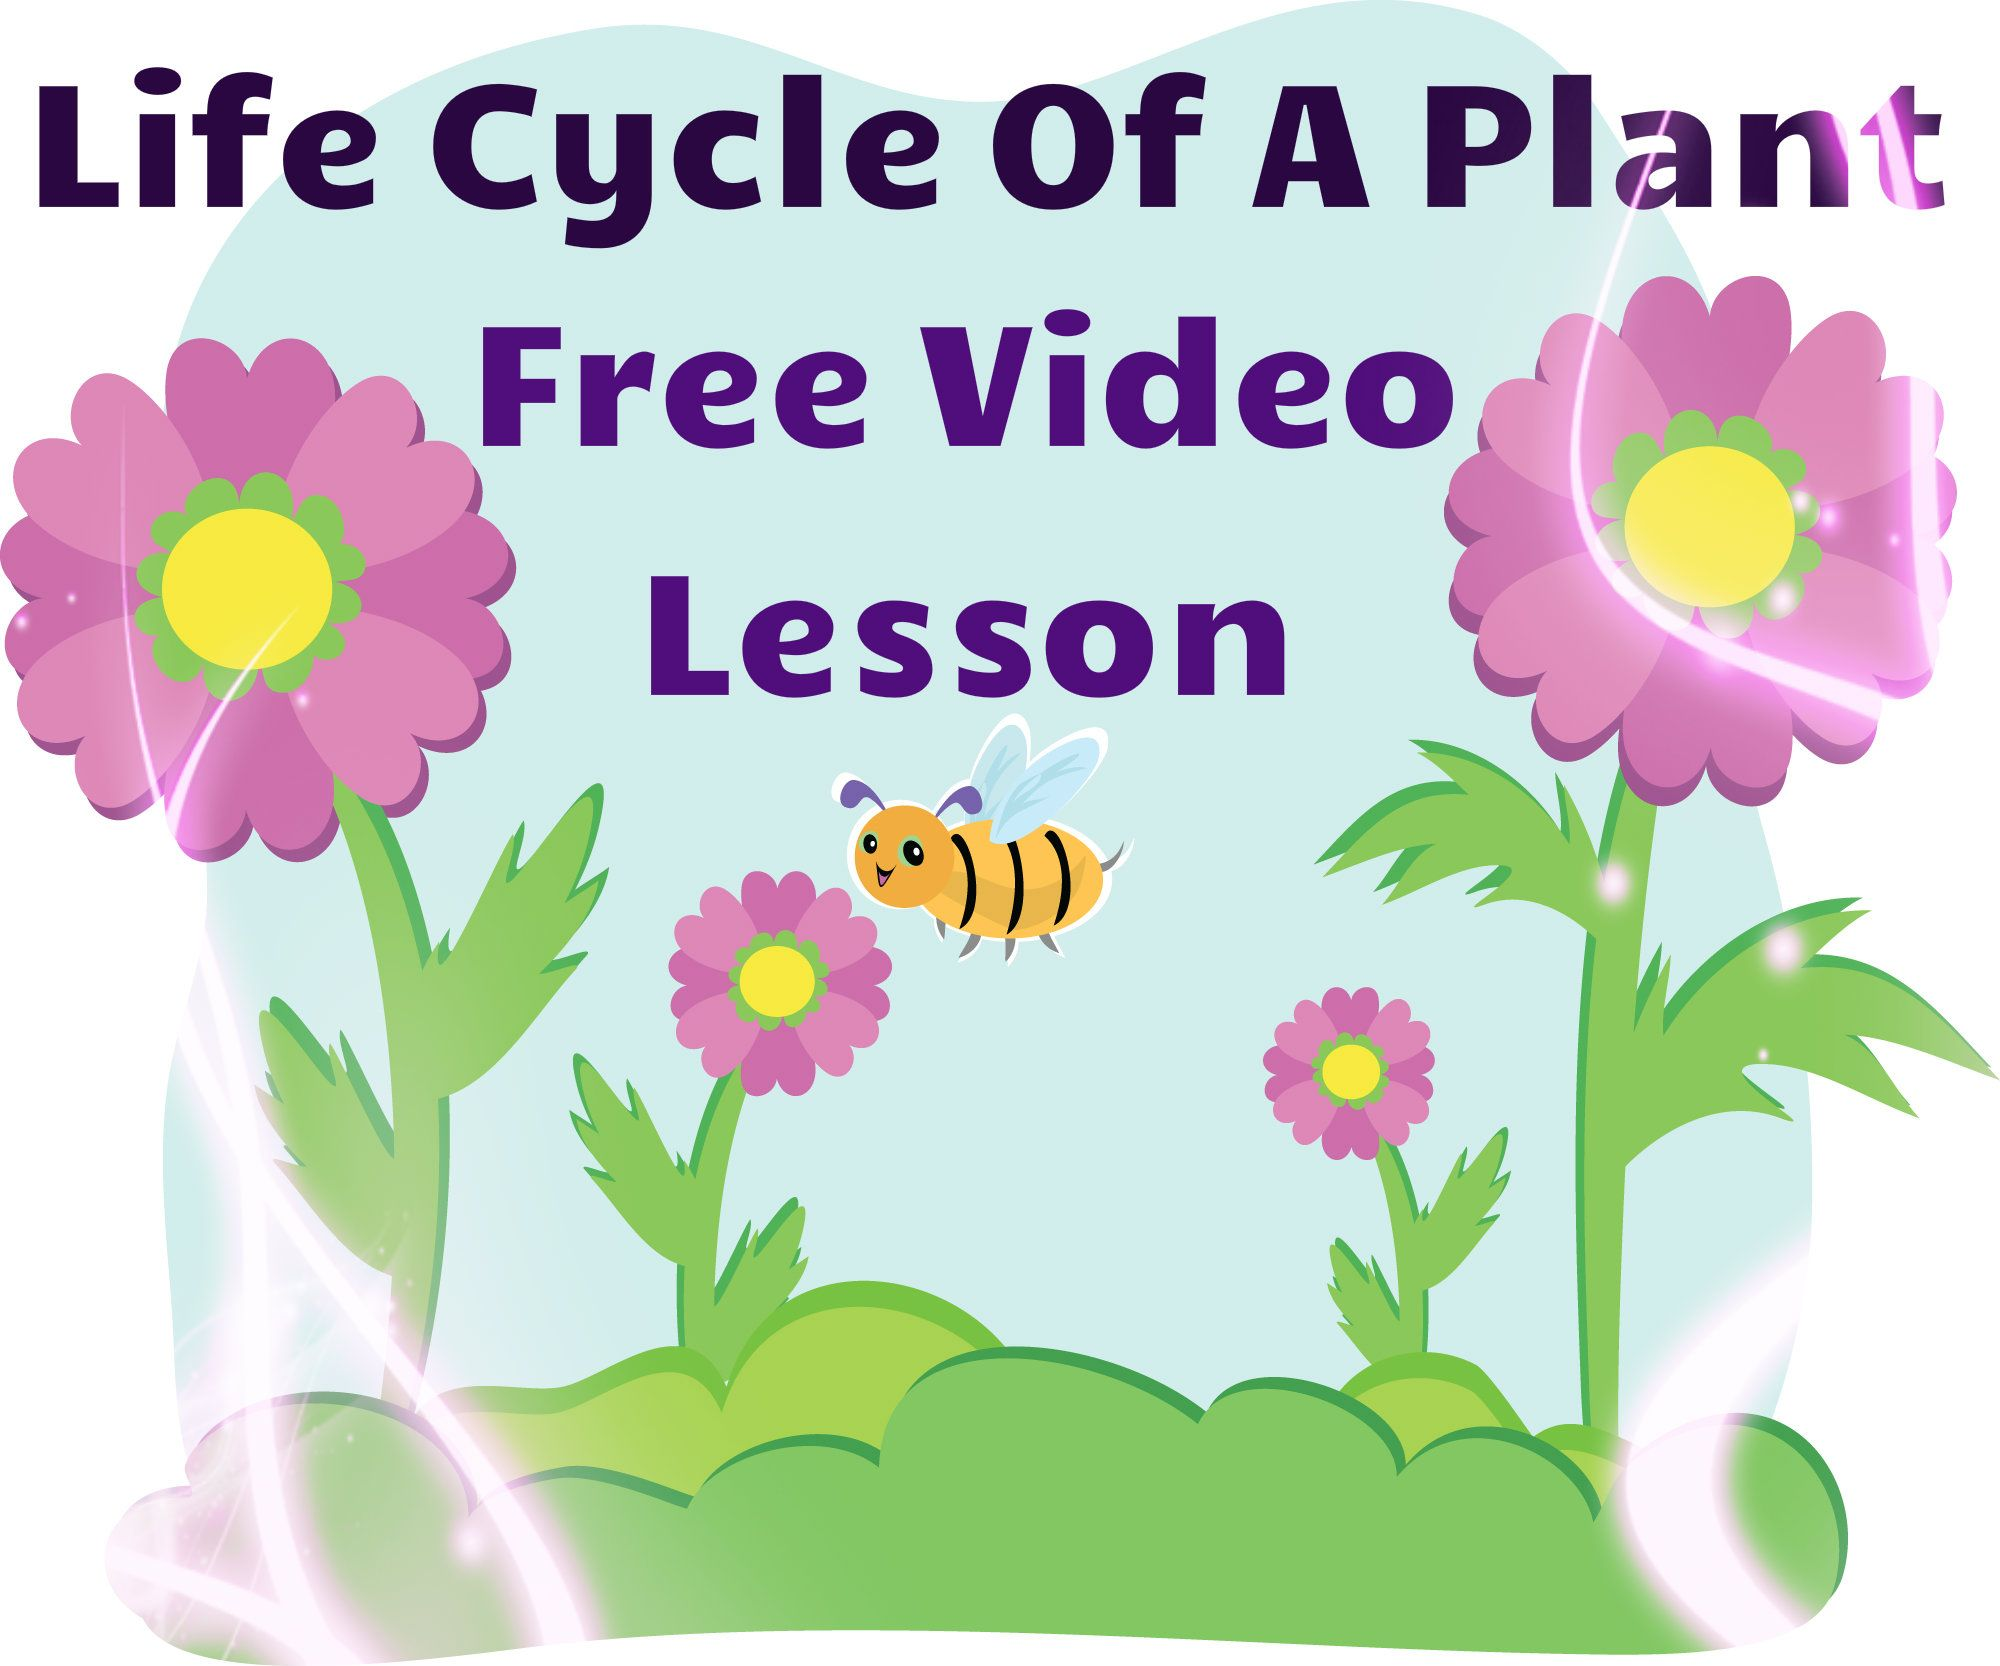 worksheet Life Cycle Of A Plant Worksheet life cycle of a plant freebie differentiated lesson for grade 3 students on an iep gardening week pinter